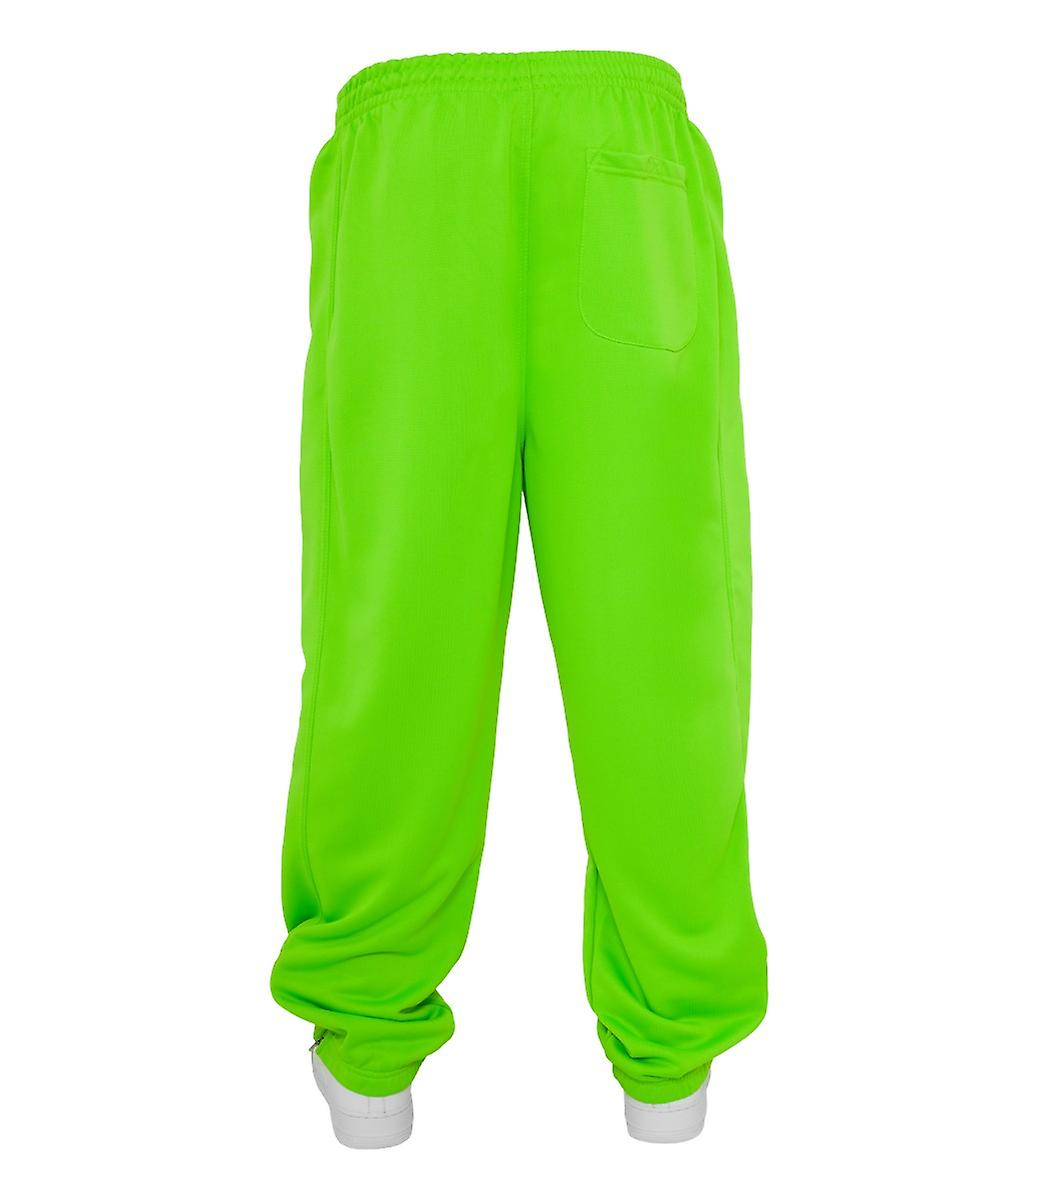 Urban Classics Sweatpants Neon